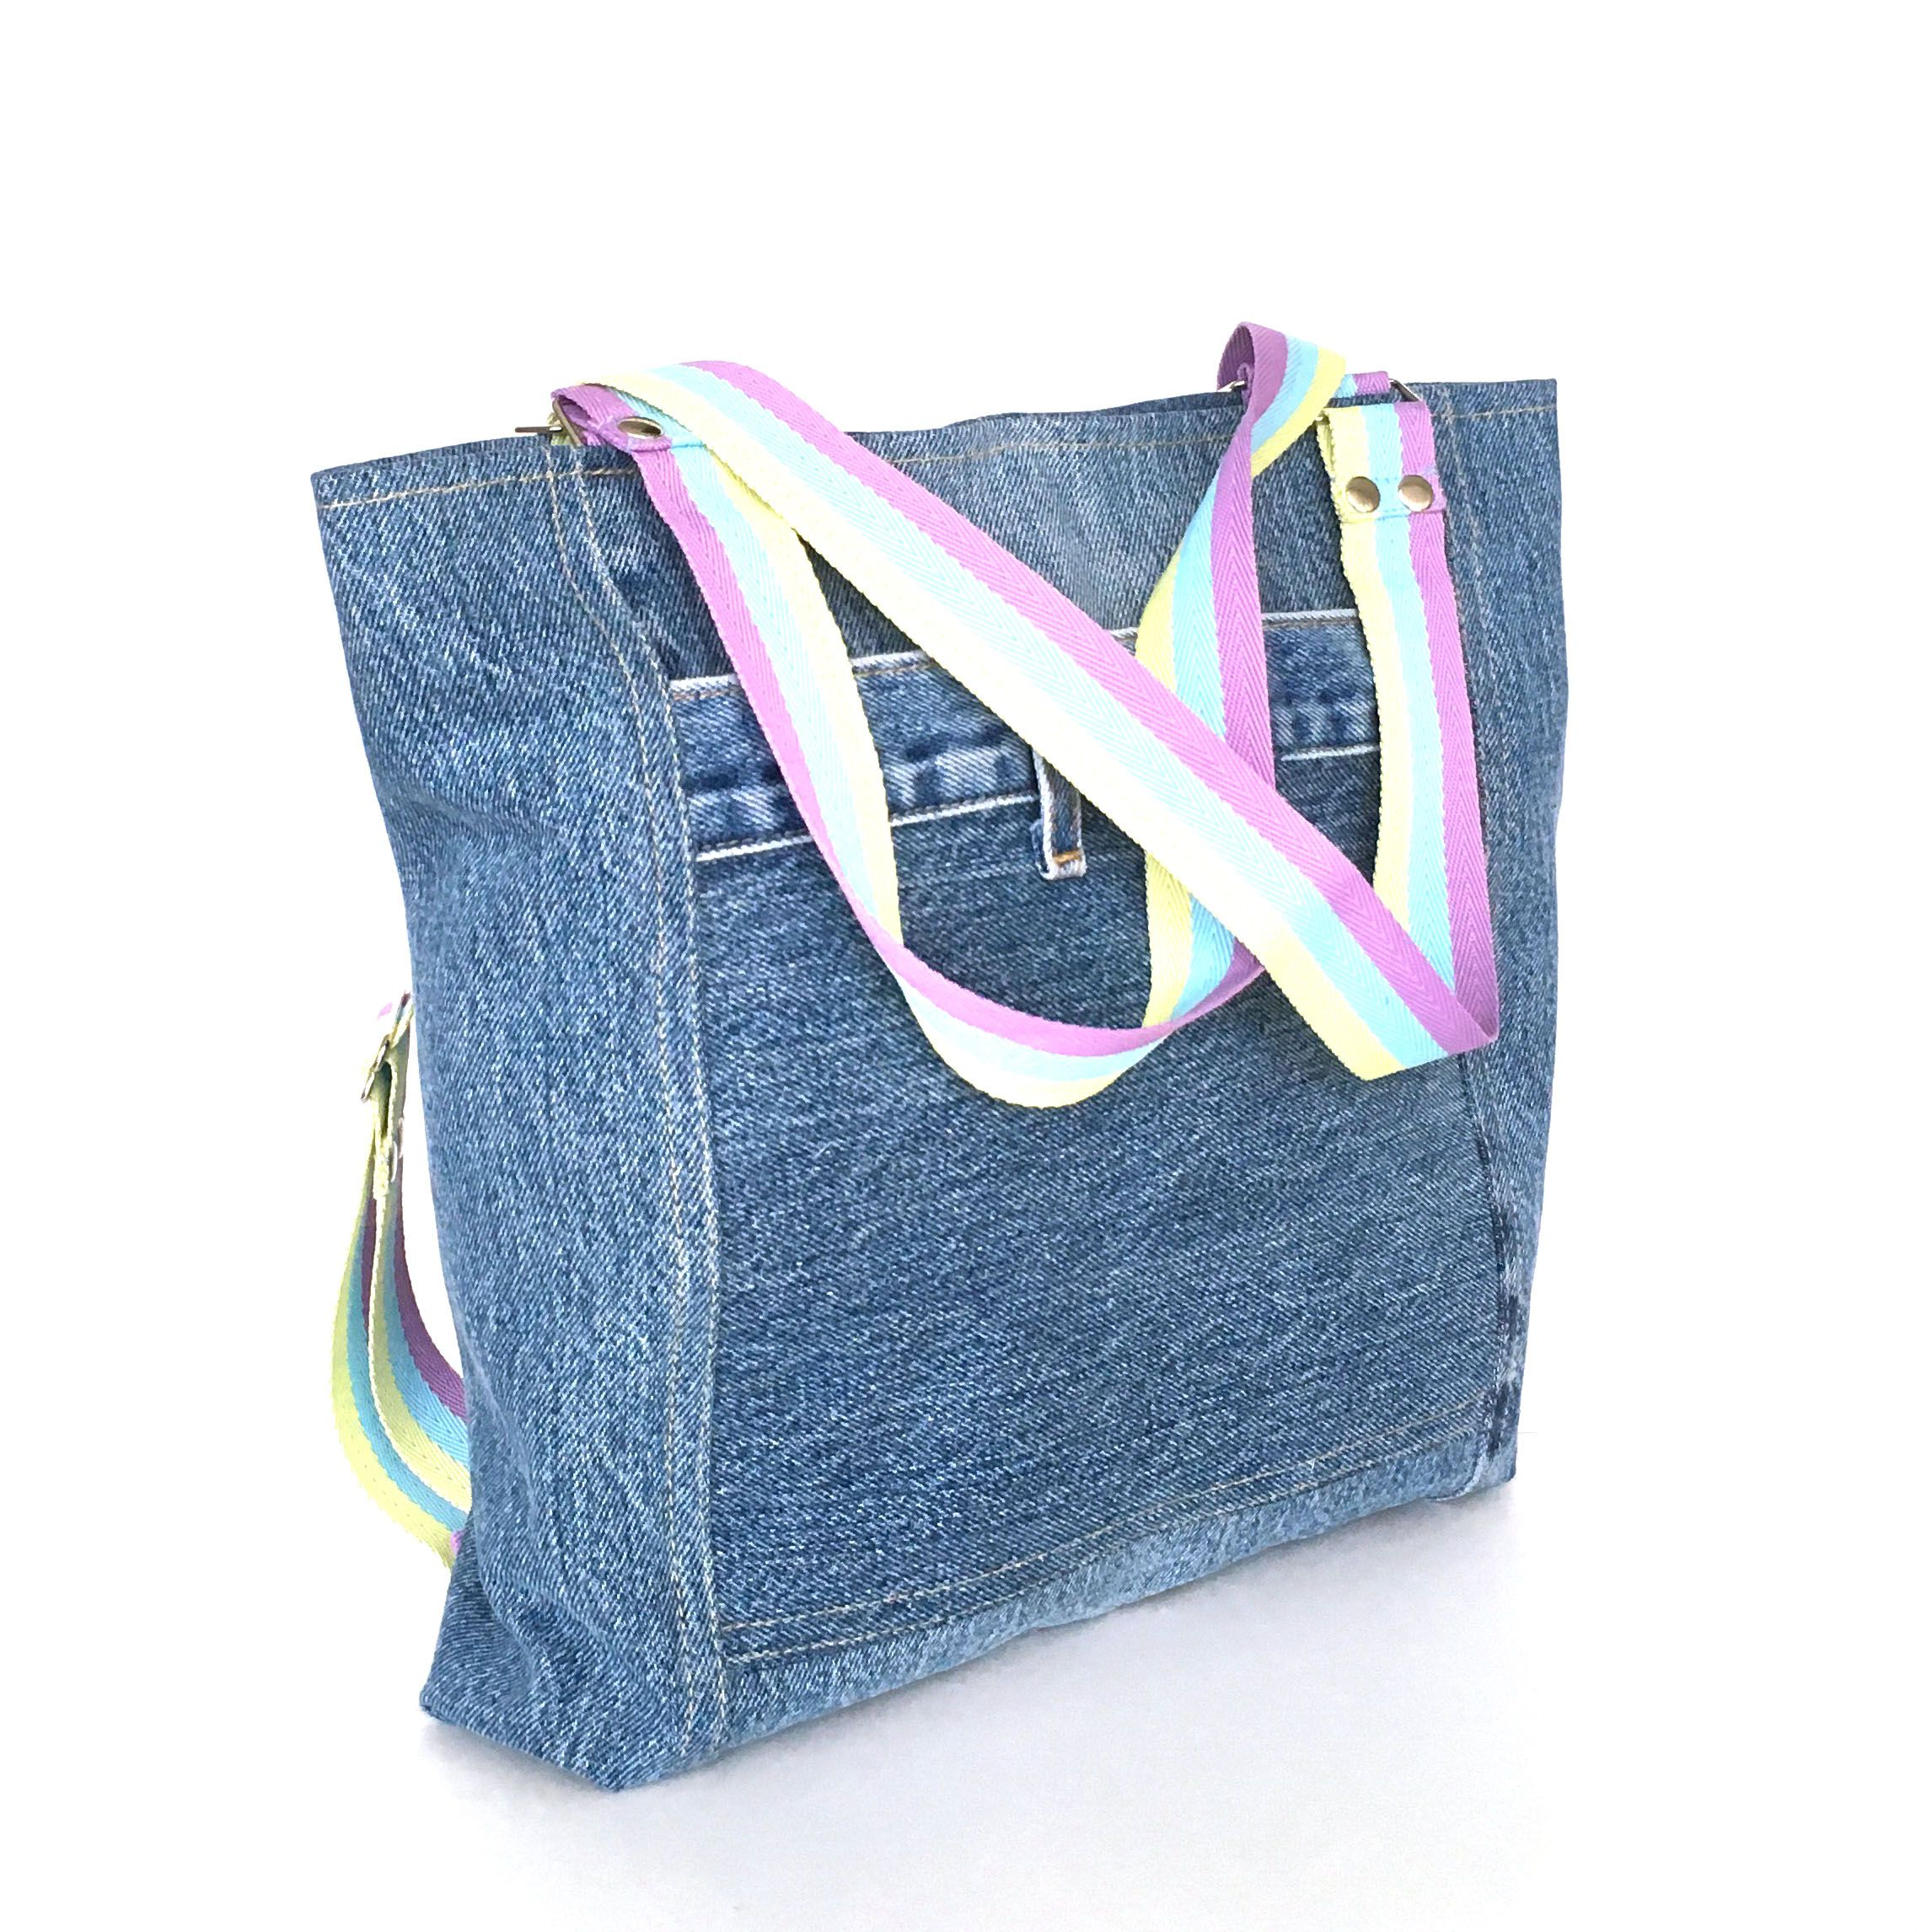 72e18edb79 Recycled denim convertible bag by sisoi